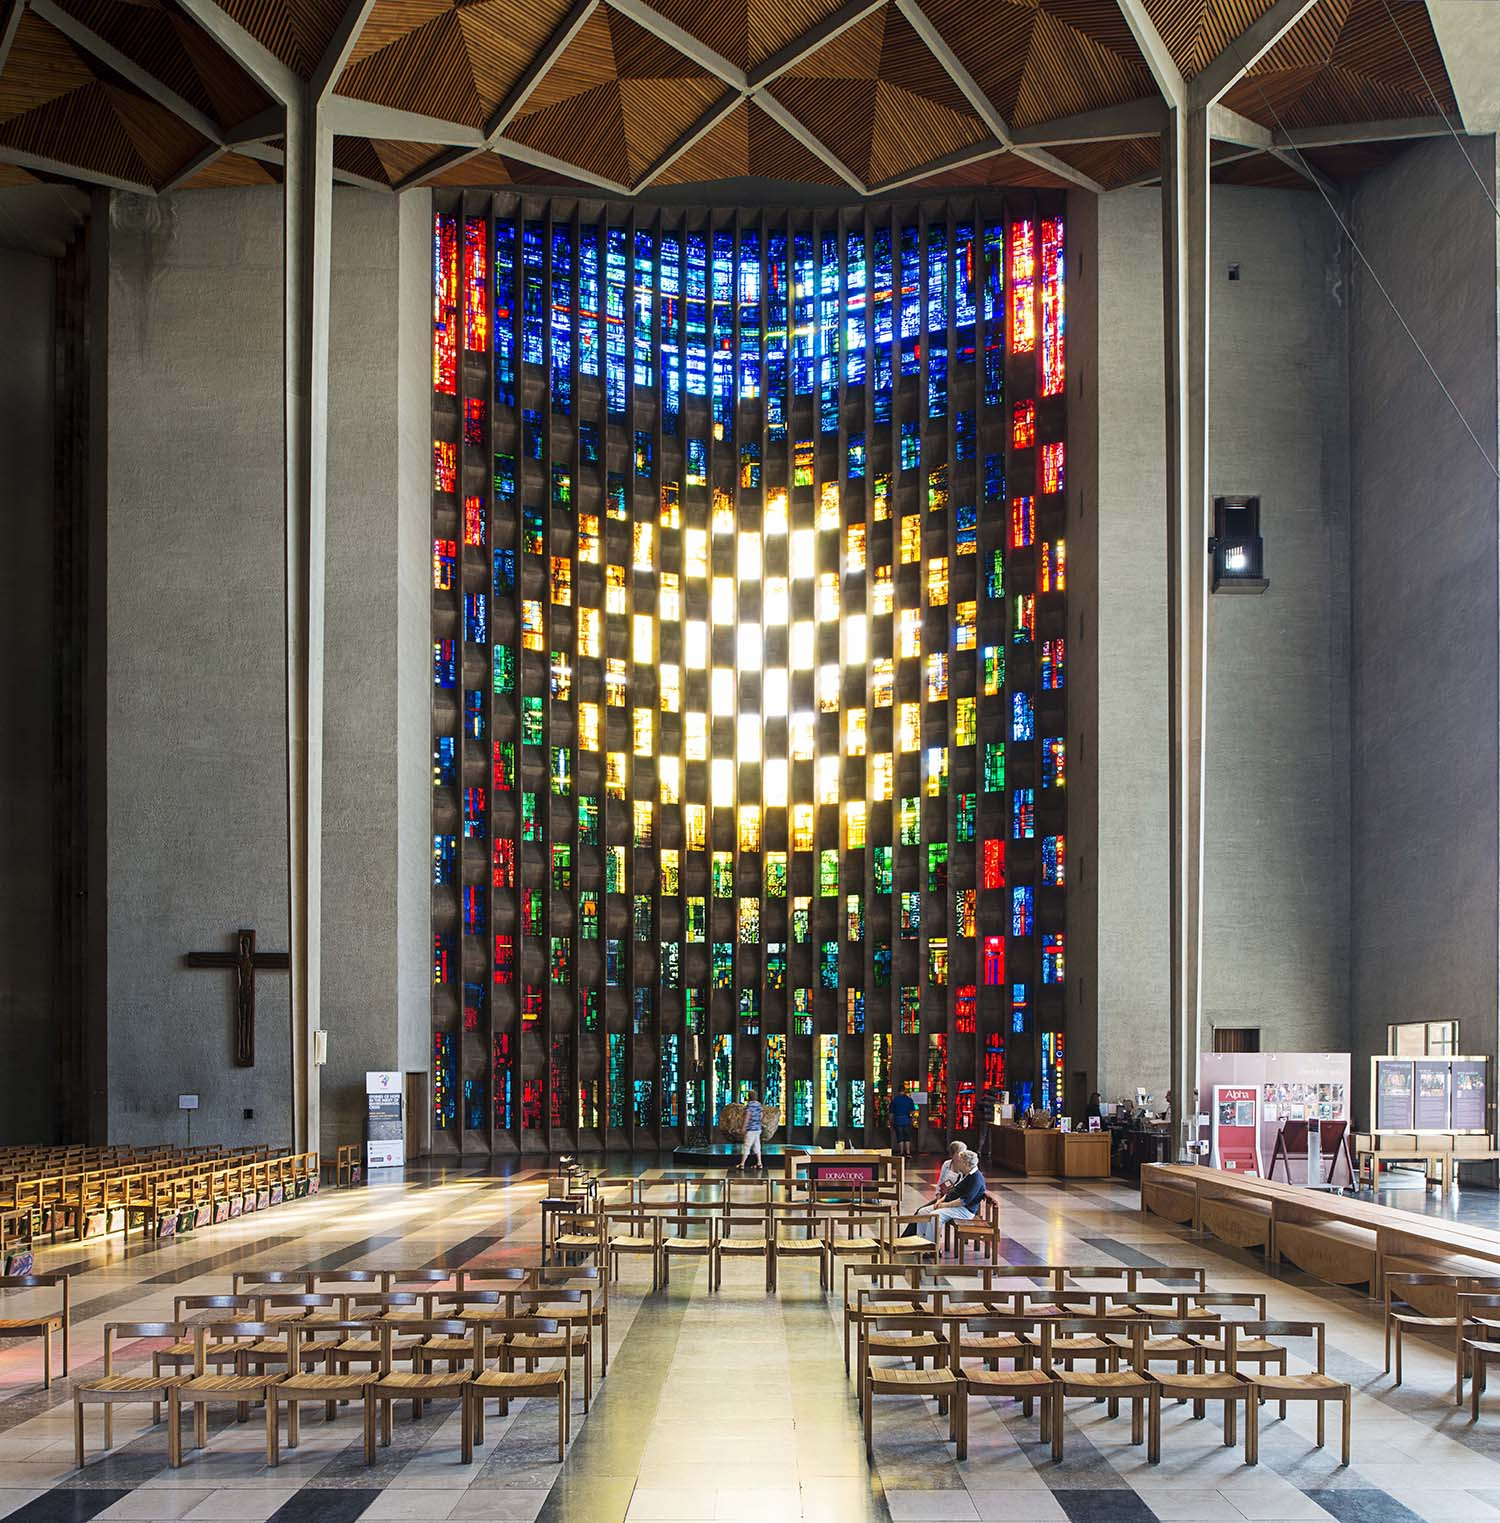 COVENTRY CATHEDRAL / SACRED SPACES